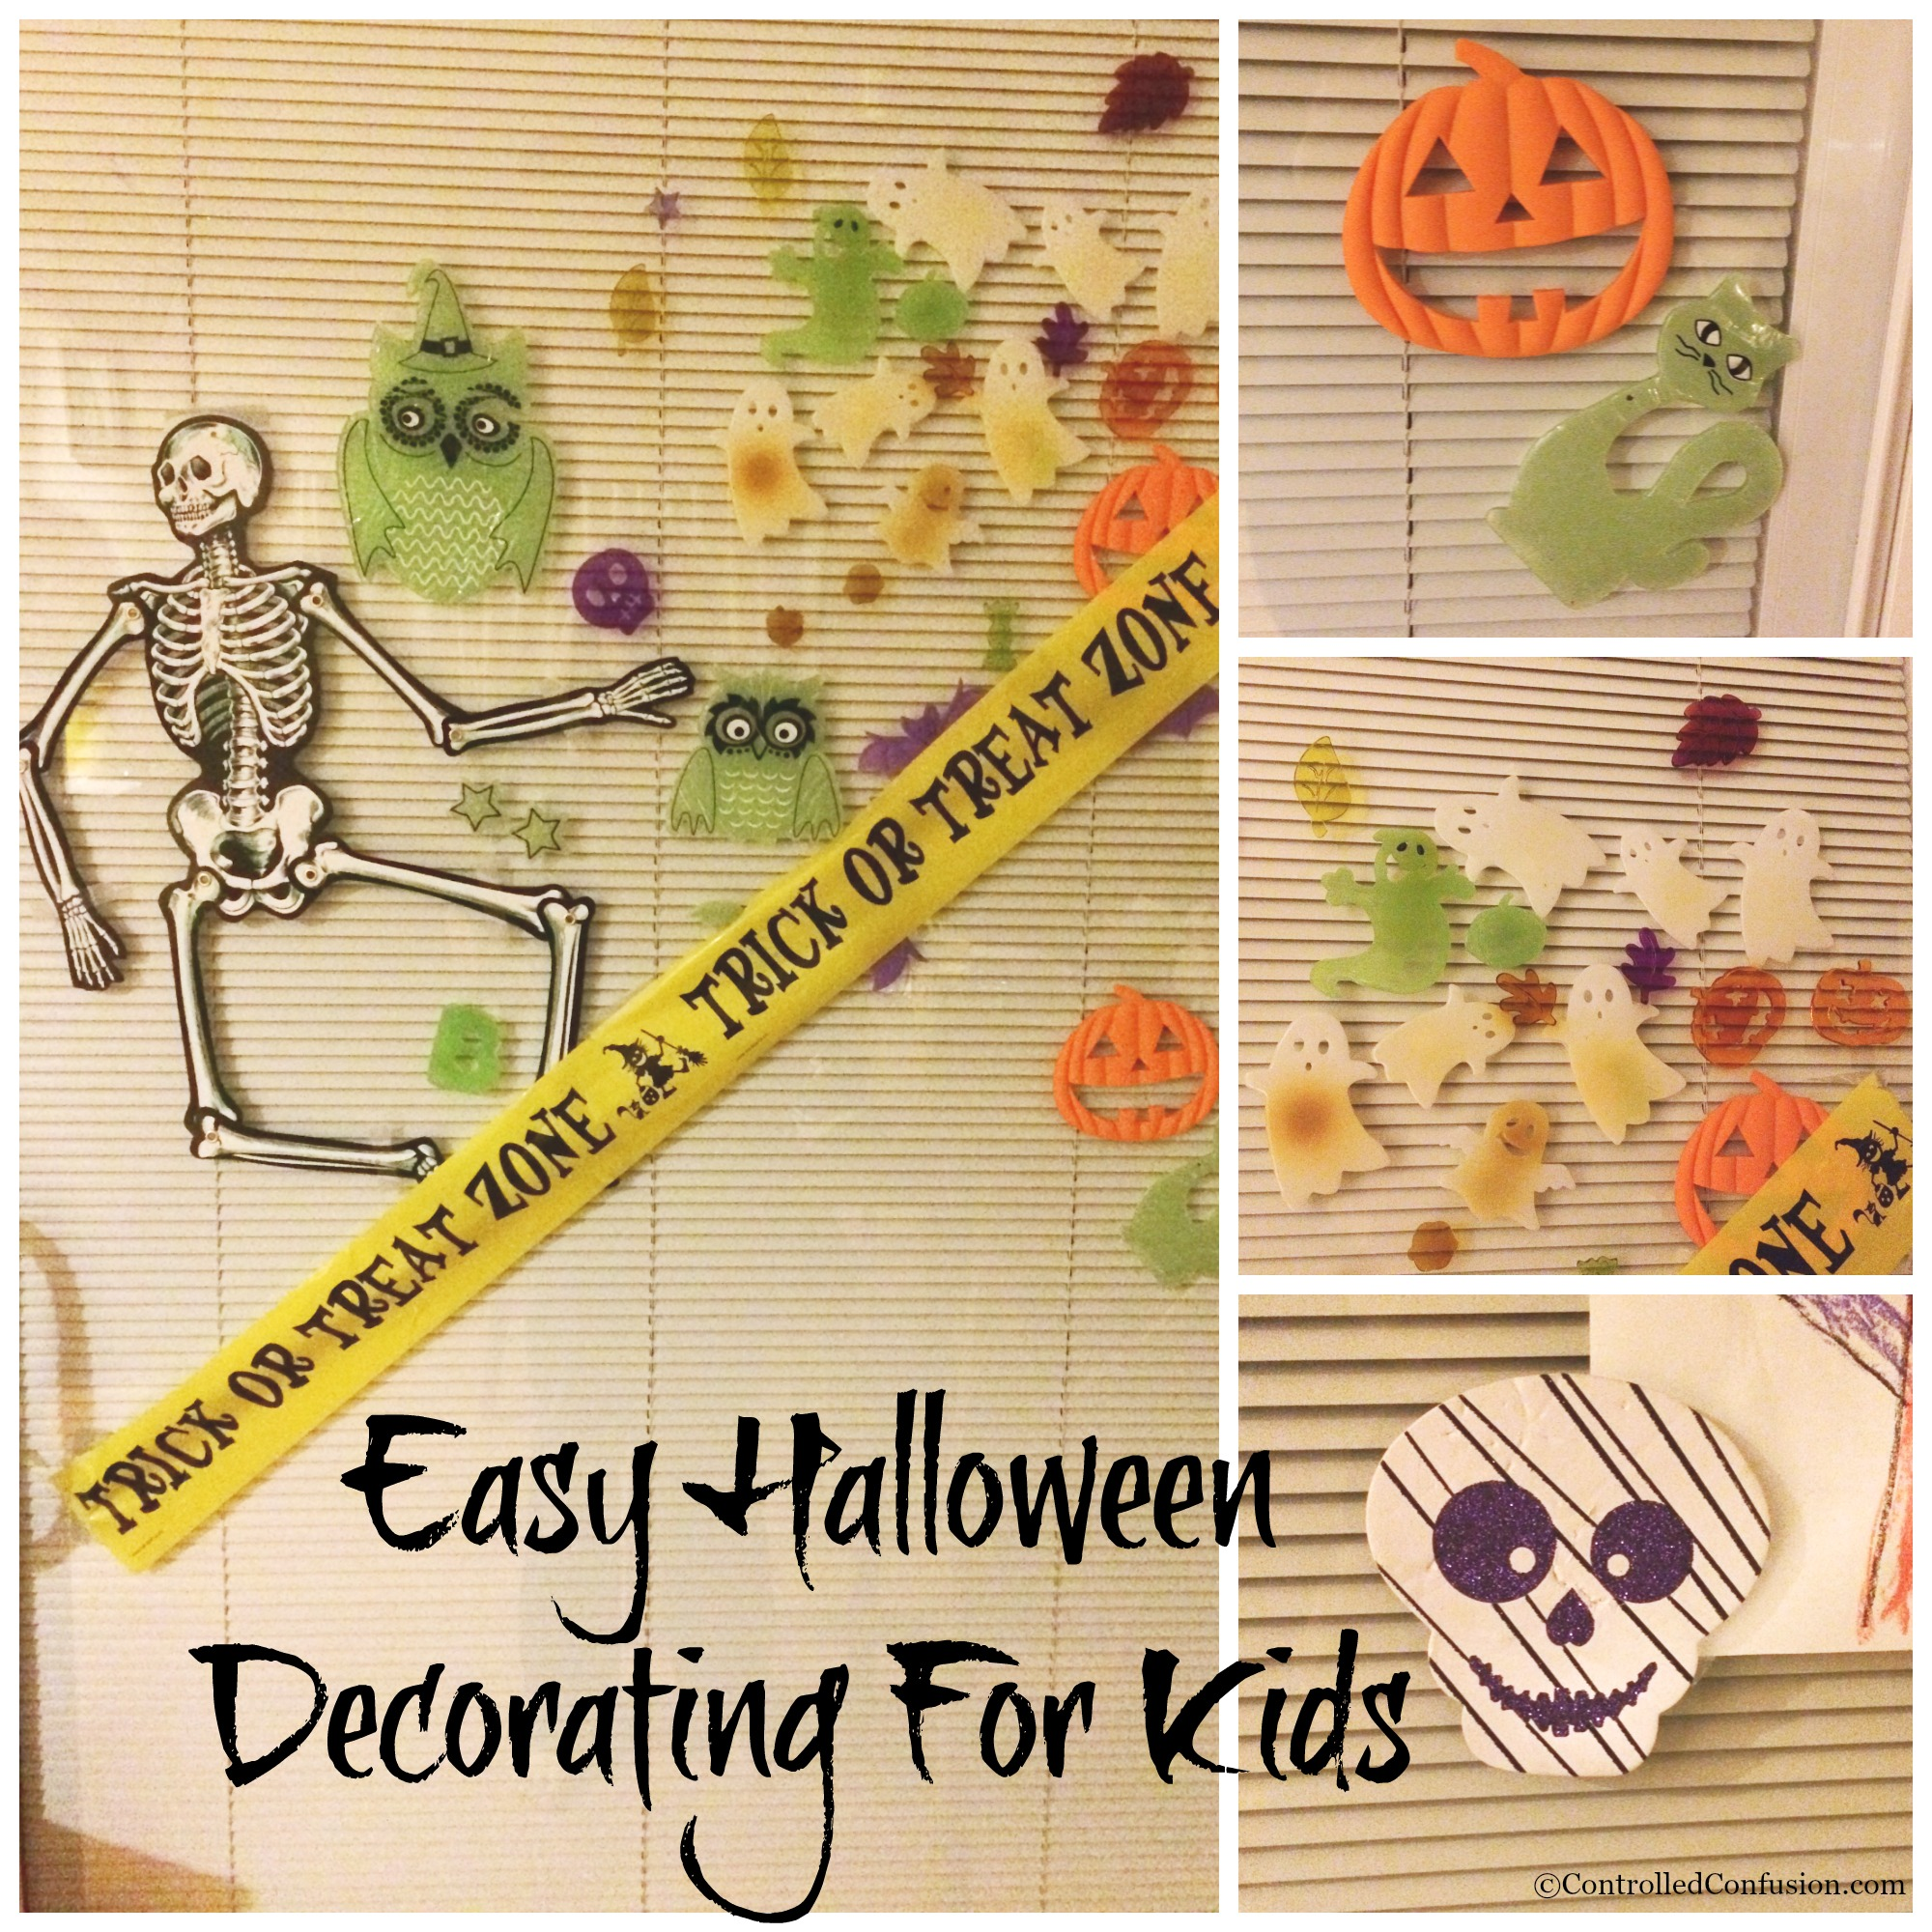 Easy Halloween Decorating For Kids